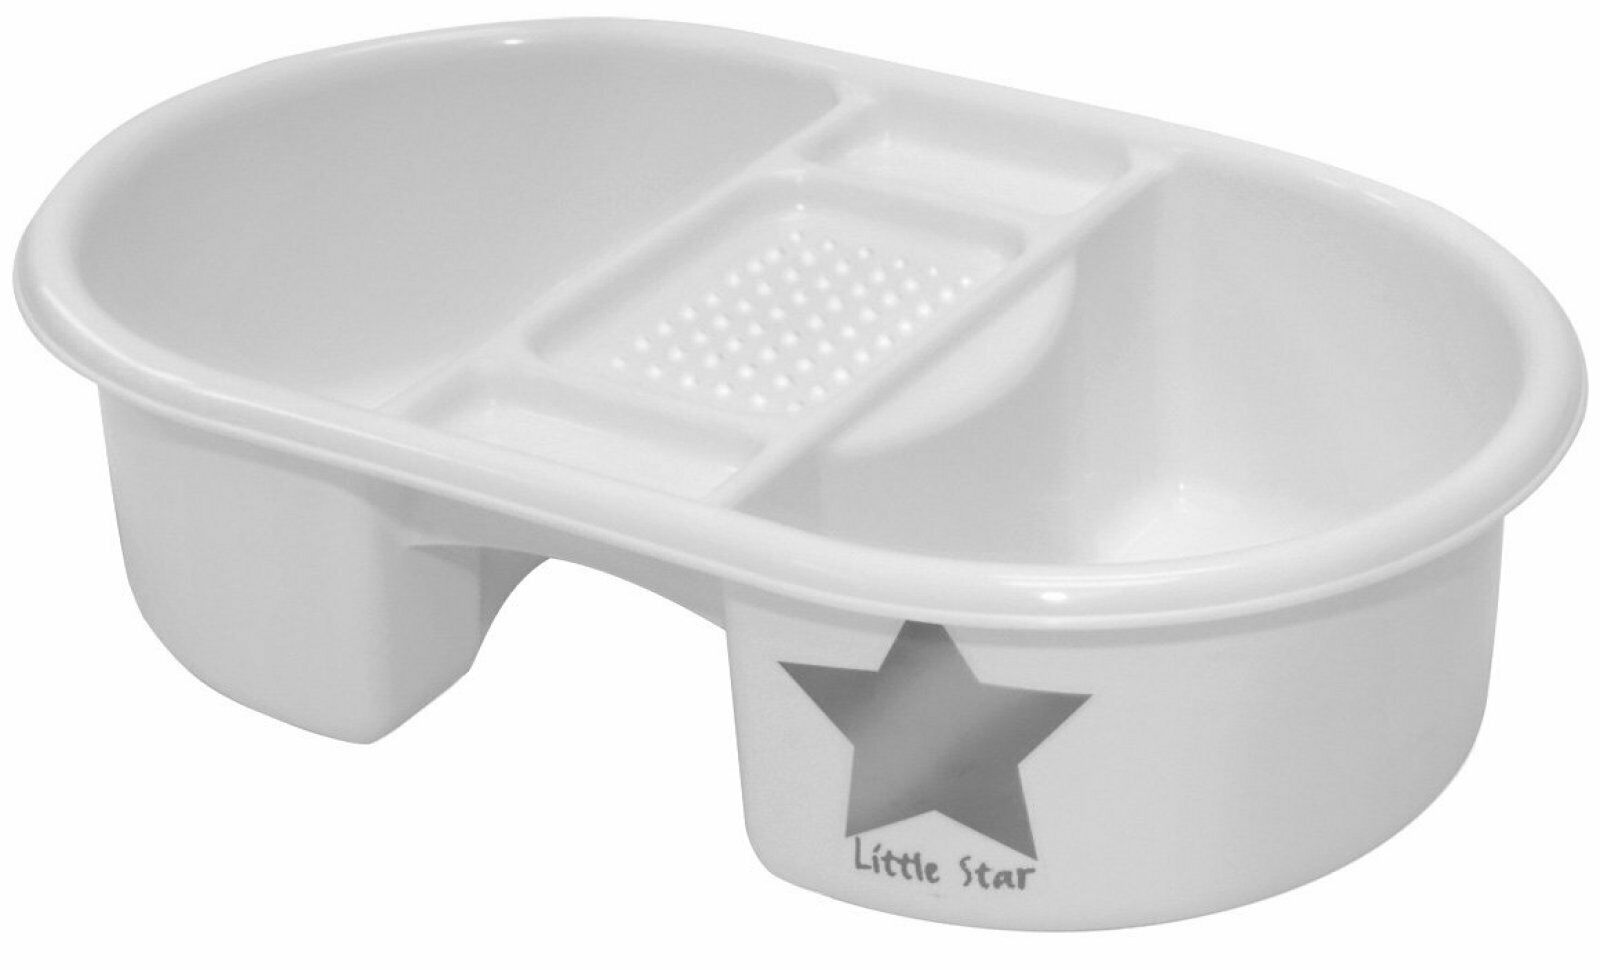 Strata Top And Tail Bowl Silver Lining Star Design Sturdy Plastic Baby Bath UK